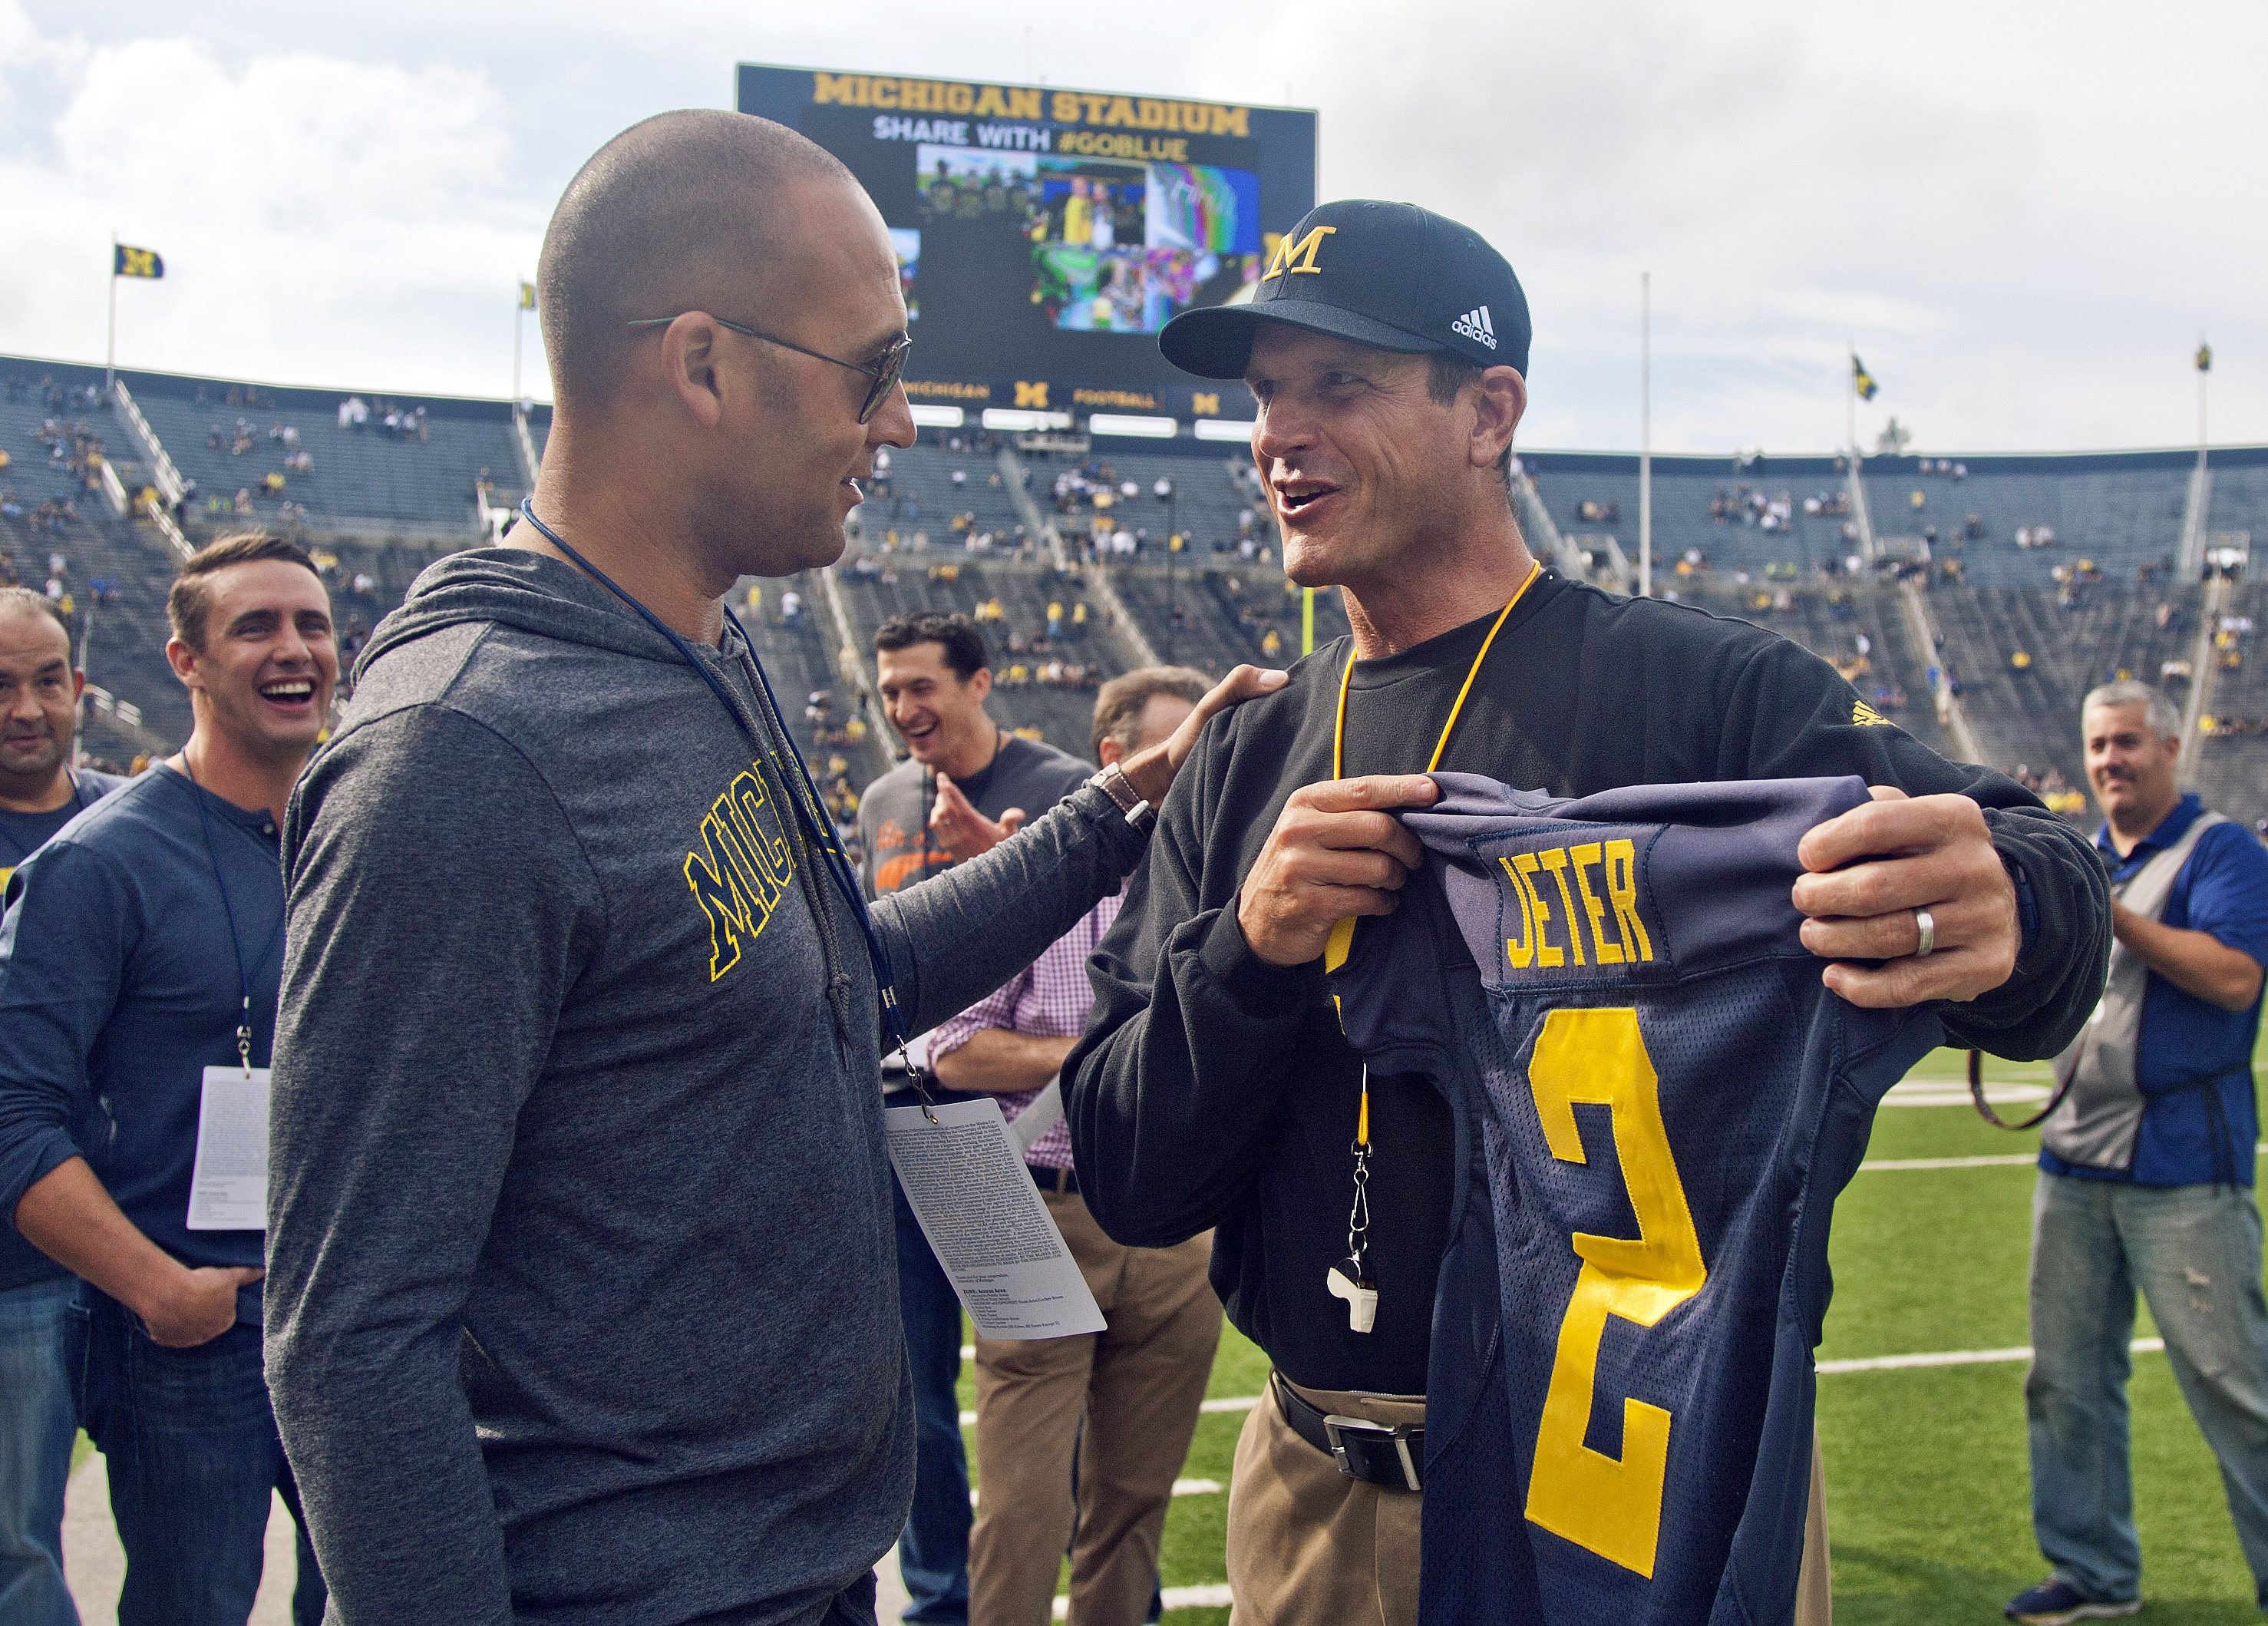 Former New York Yankees baseball player Derek Jeter, left, receives a jersey with his name an No, 2 from Michigan head coach Jim Harbaugh, right, before Michgan's NCAA college football game against BYU in Ann Arbor, Mich., Saturday, Sept. 26, 2015. Jeter